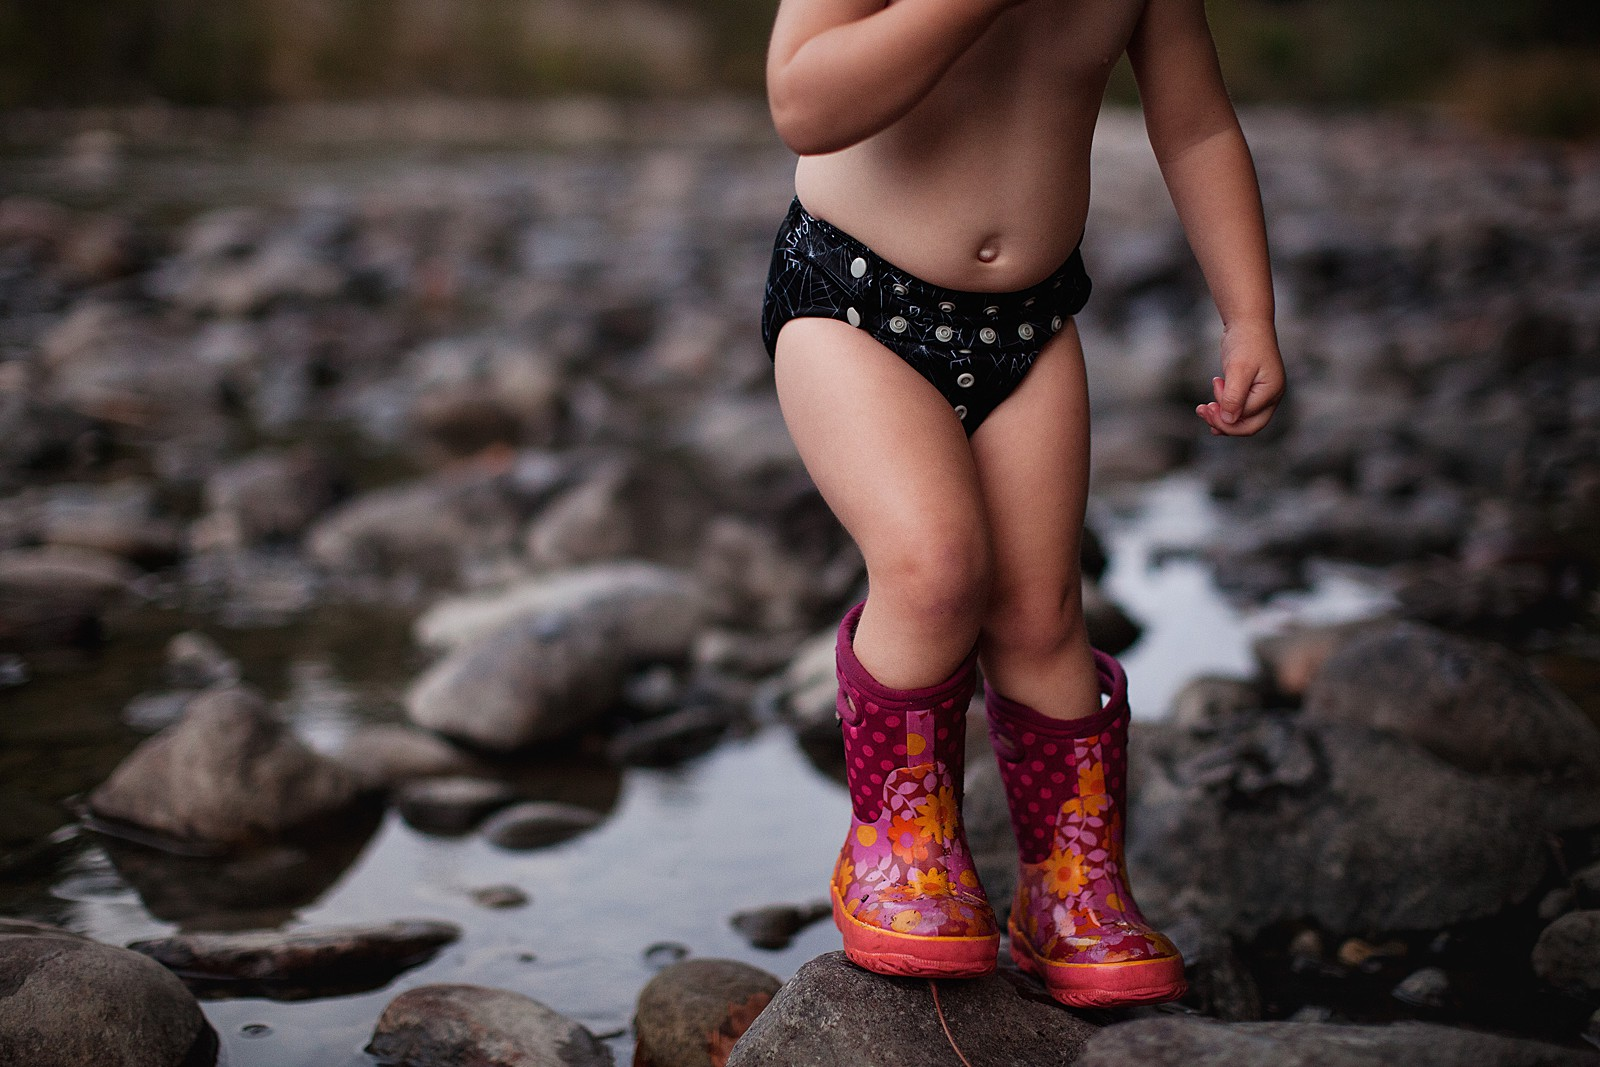 Outdoor_adventures_Neyssa_Lee_6 young child in boots and diaper outside on river bank